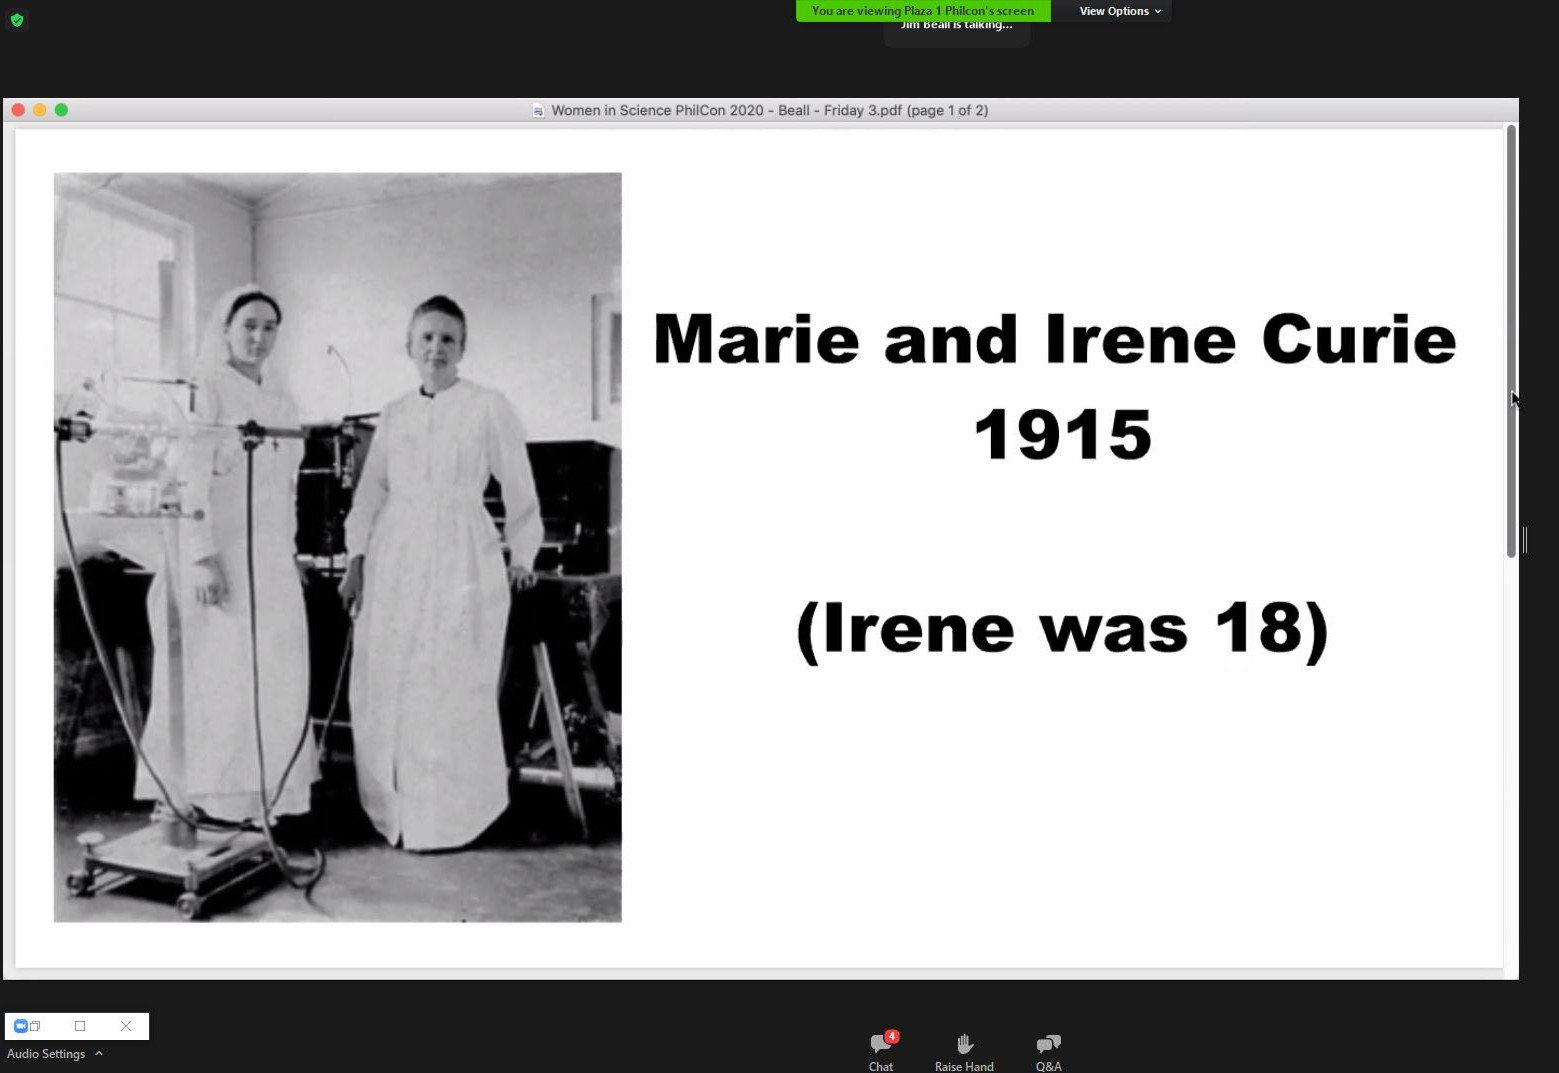 Screenshot from Zoom. It is a slide showing a picture of two women in white lab coats/dresses. Description states: 'Marie and Irene Curie 1915 (Irene was 18)'.